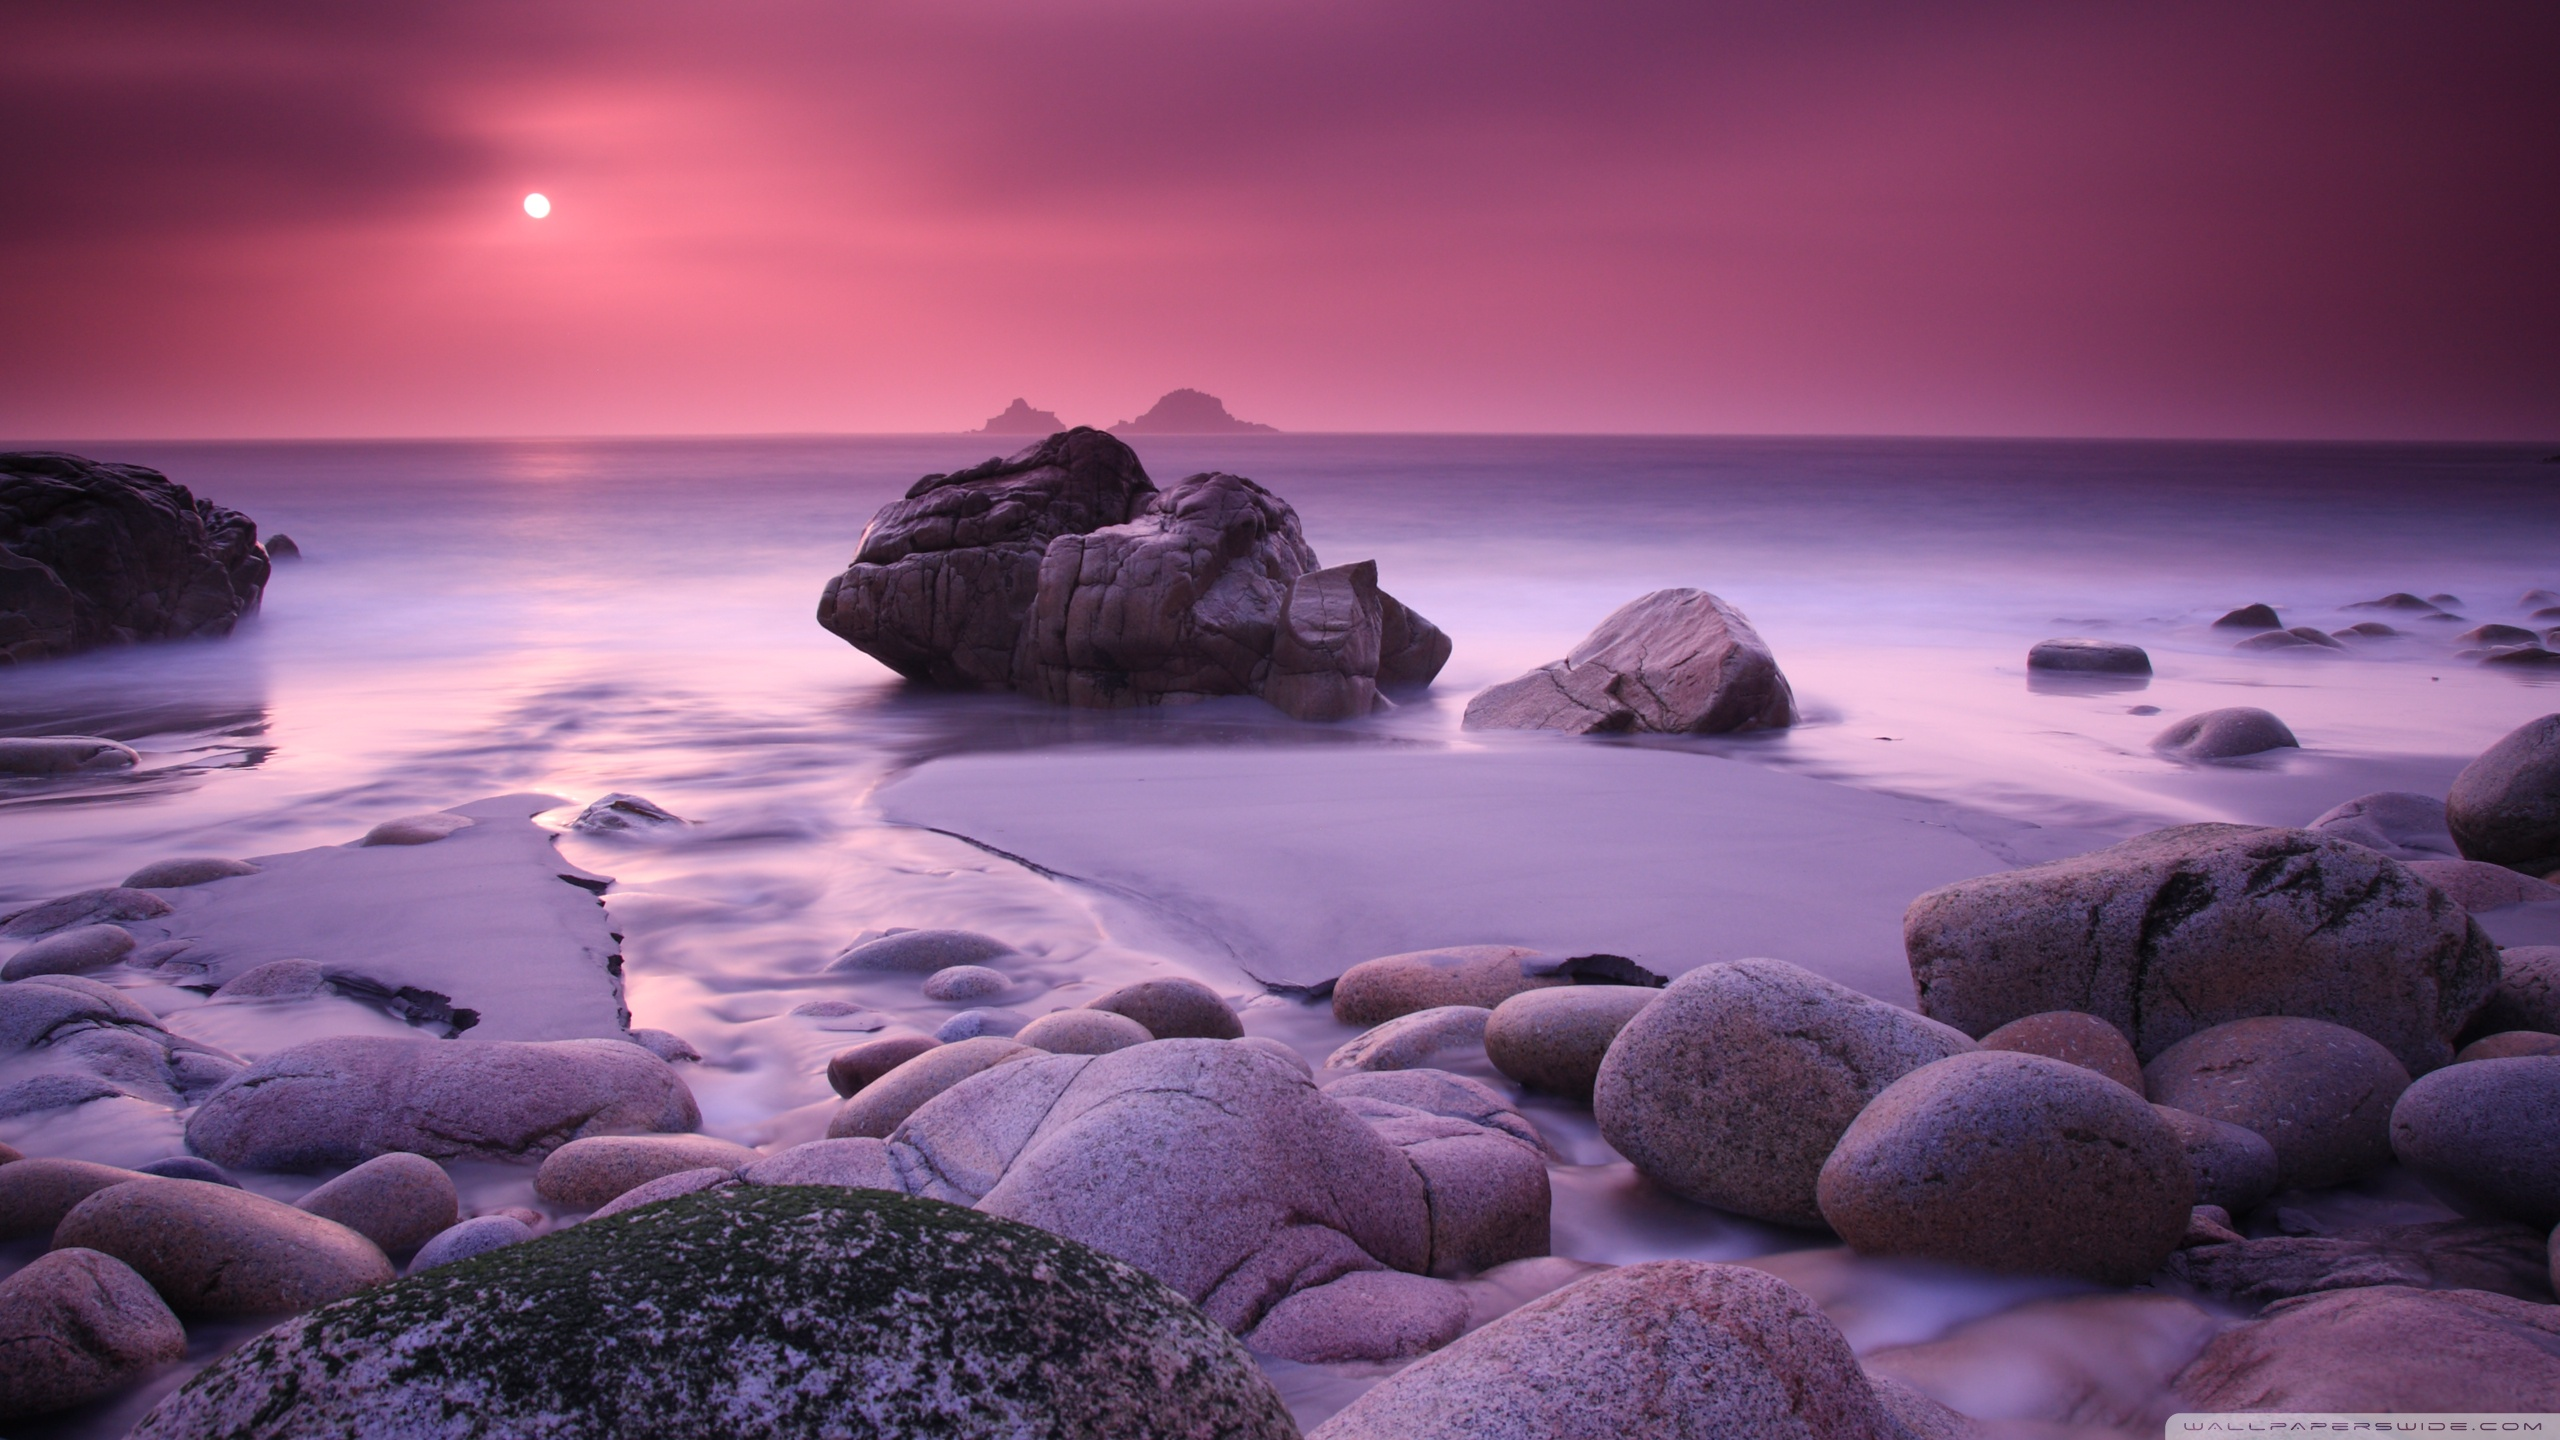 purple_sunset_2-wallpaper-2560x1440